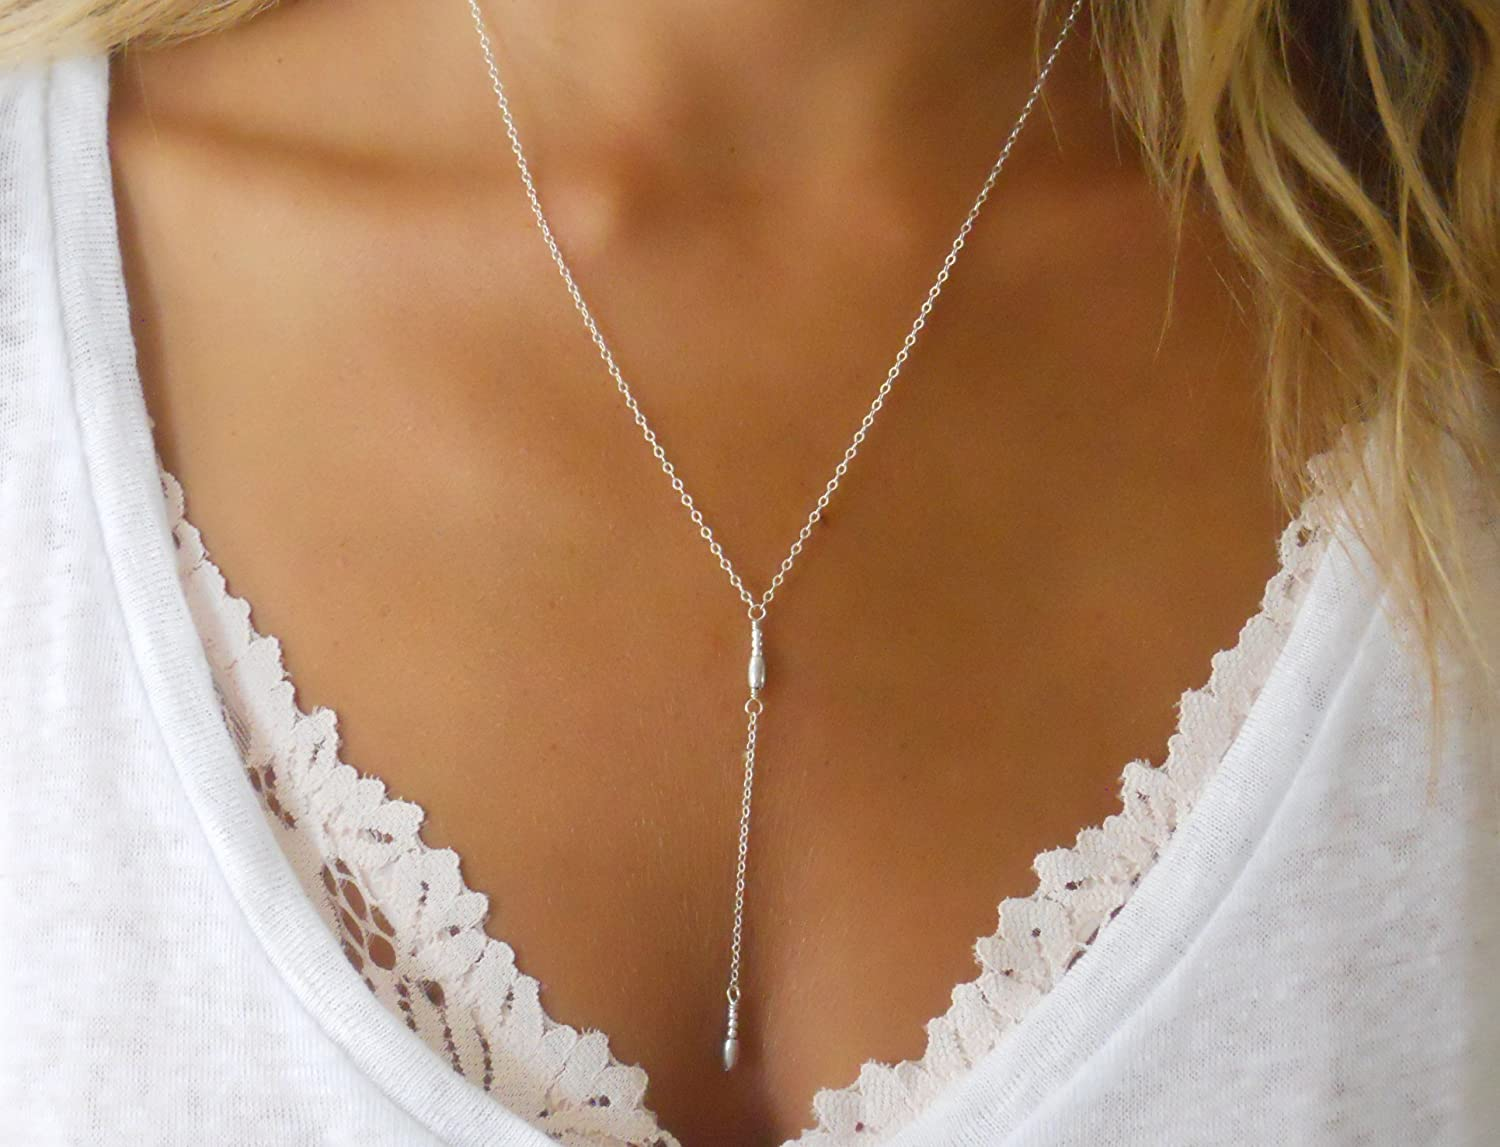 Handmade Designer Delicate Everyday Layering Sterling Silver Y Lariat Necklace